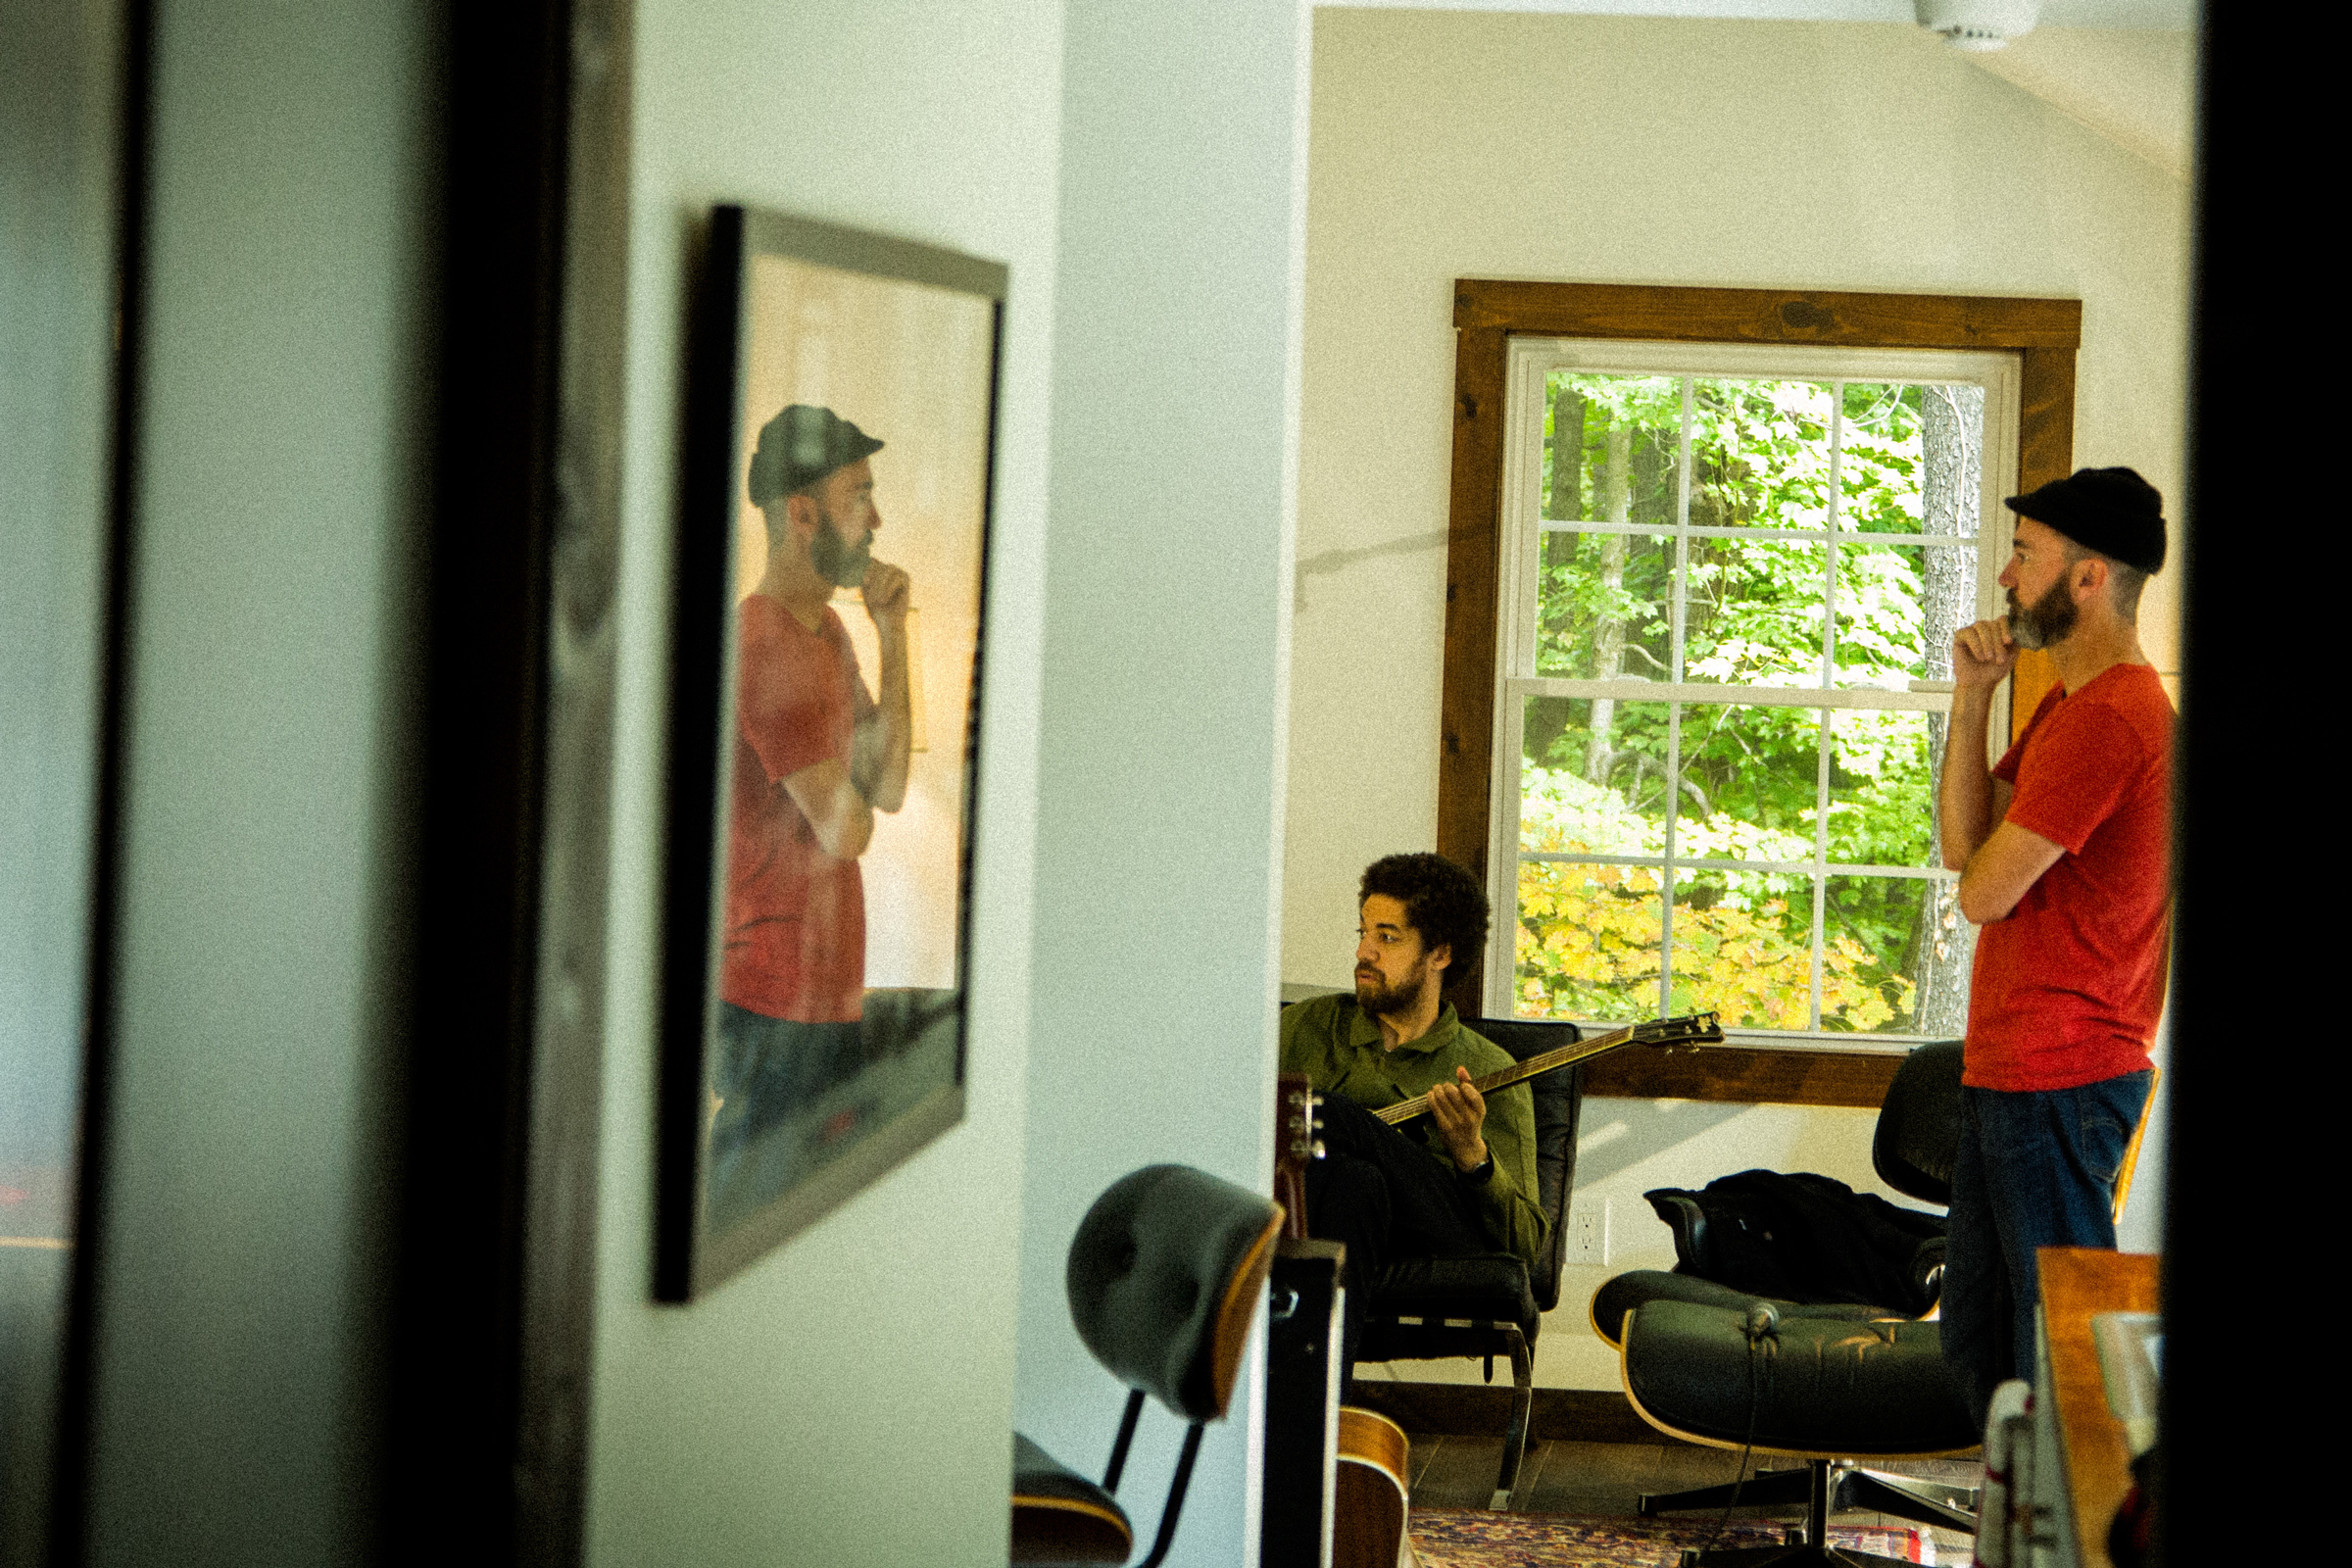 Broken Bells' Glimpse 'Face of Evil' on Soulful New Song 'Good Luck'